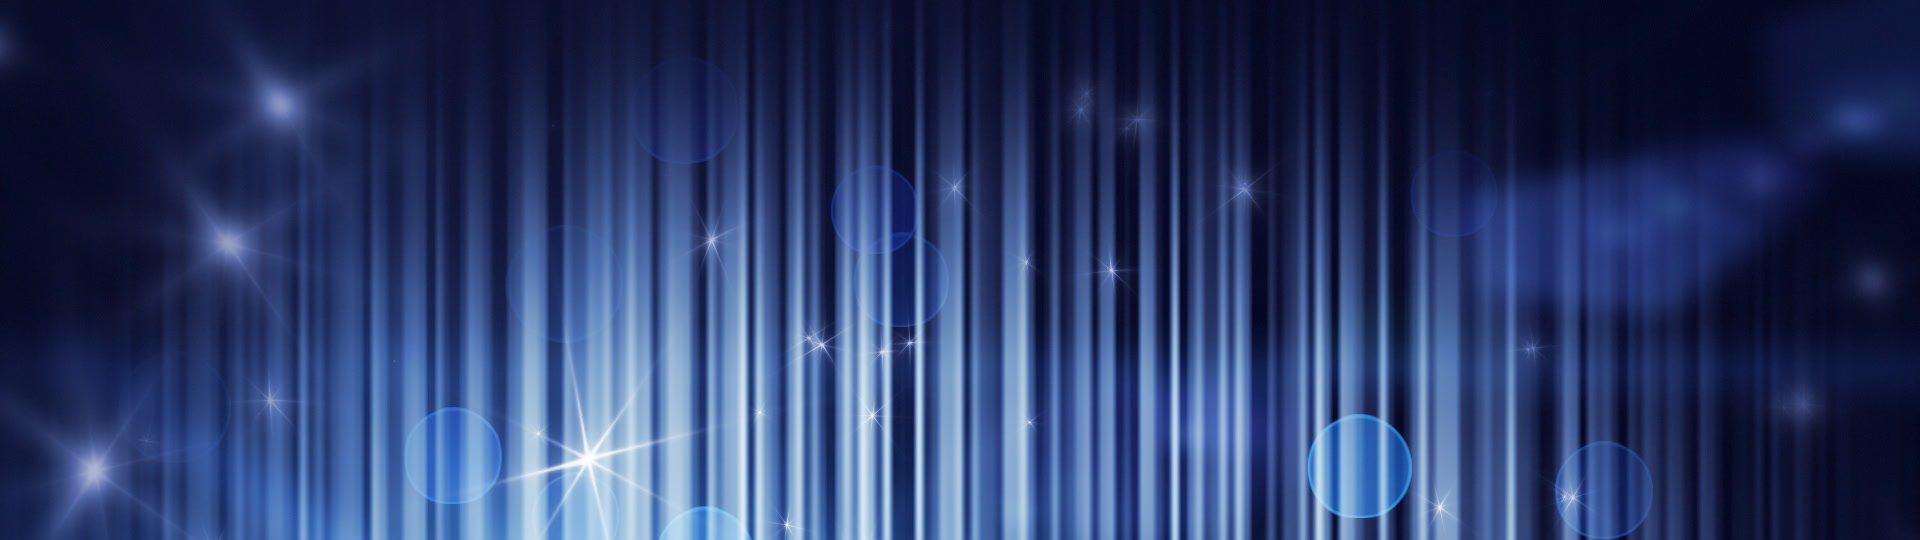 Stars lights and vertical stripes blue loop background | stars, lights and vertical stripes. Computer generated seamless loop abstract motion blue background - ID:12389